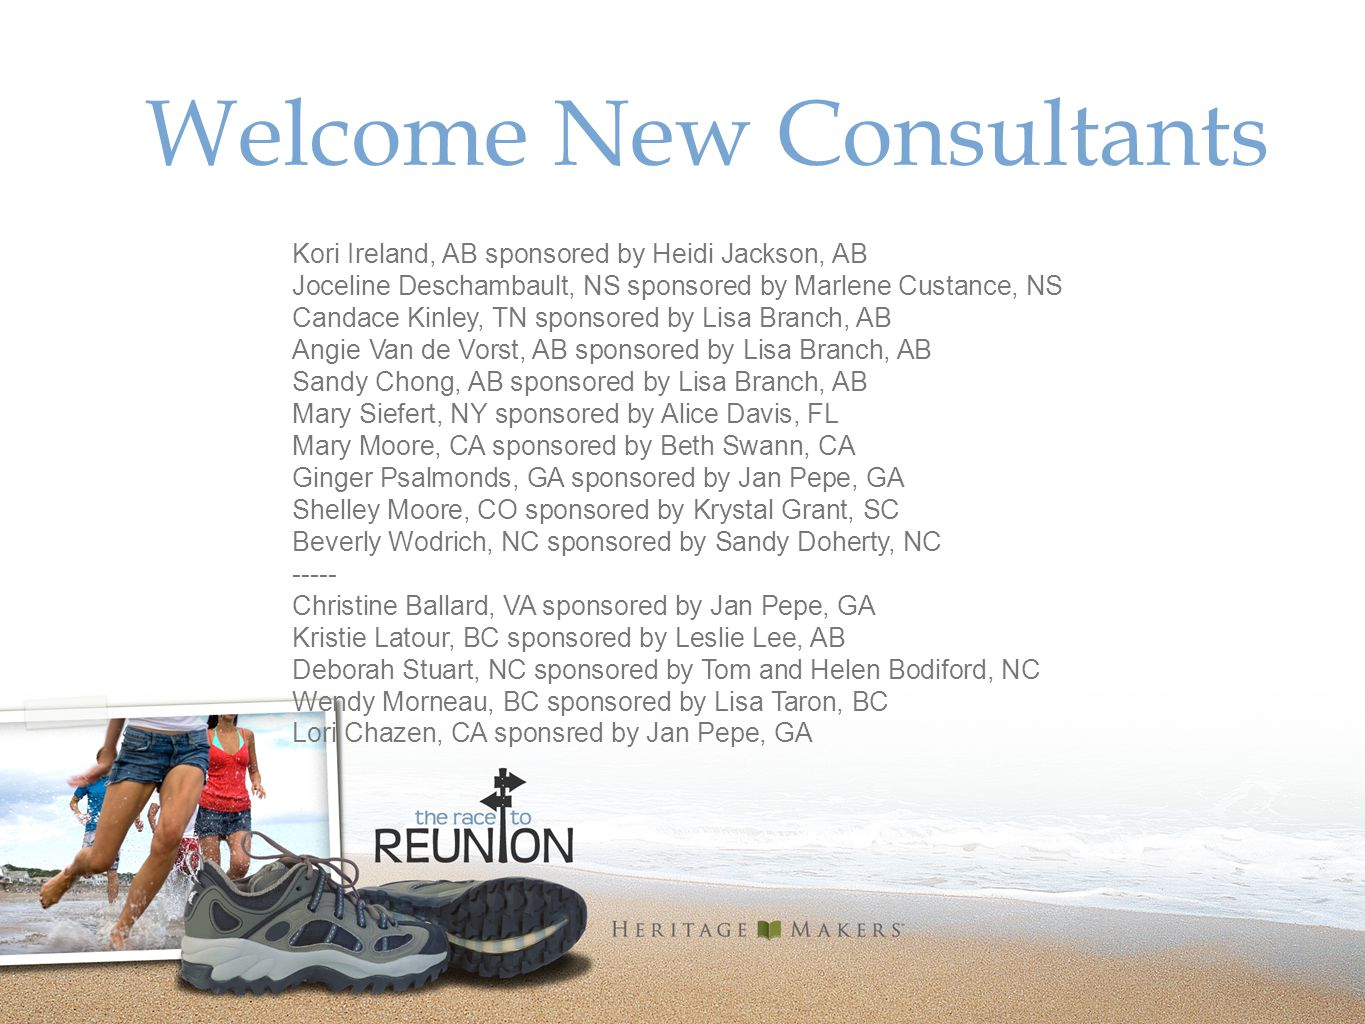 Welcome New Consultants Kori Ireland, AB sponsored by Heidi Jackson, AB Joceline Deschambault, NS sponsored by Marlene Custance, NS Candace Kinley, TN sponsored by Lisa Branch, AB Angie Van de Vorst, AB sponsored by Lisa Branch, AB Sandy Chong, AB sponsored by Lisa Branch, AB Mary Siefert, NY sponsored by Alice Davis, FL Mary Moore, CA sponsored by Beth Swann, CA Ginger Psalmonds, GA sponsored by Jan Pepe, GA Shelley Moore, CO sponsored by Krystal Grant, SC Beverly Wodrich, NC sponsored by Sandy Doherty, NC ----- Christine Ballard, VA sponsored by Jan Pepe, GA Kristie Latour, BC sponsored by Leslie Lee, AB Deborah Stuart, NC sponsored by Tom and Helen Bodiford, NC Wendy Morneau, BC sponsored by Lisa Taron, BC Lori Chazen, CA sponsred by Jan Pepe, GA